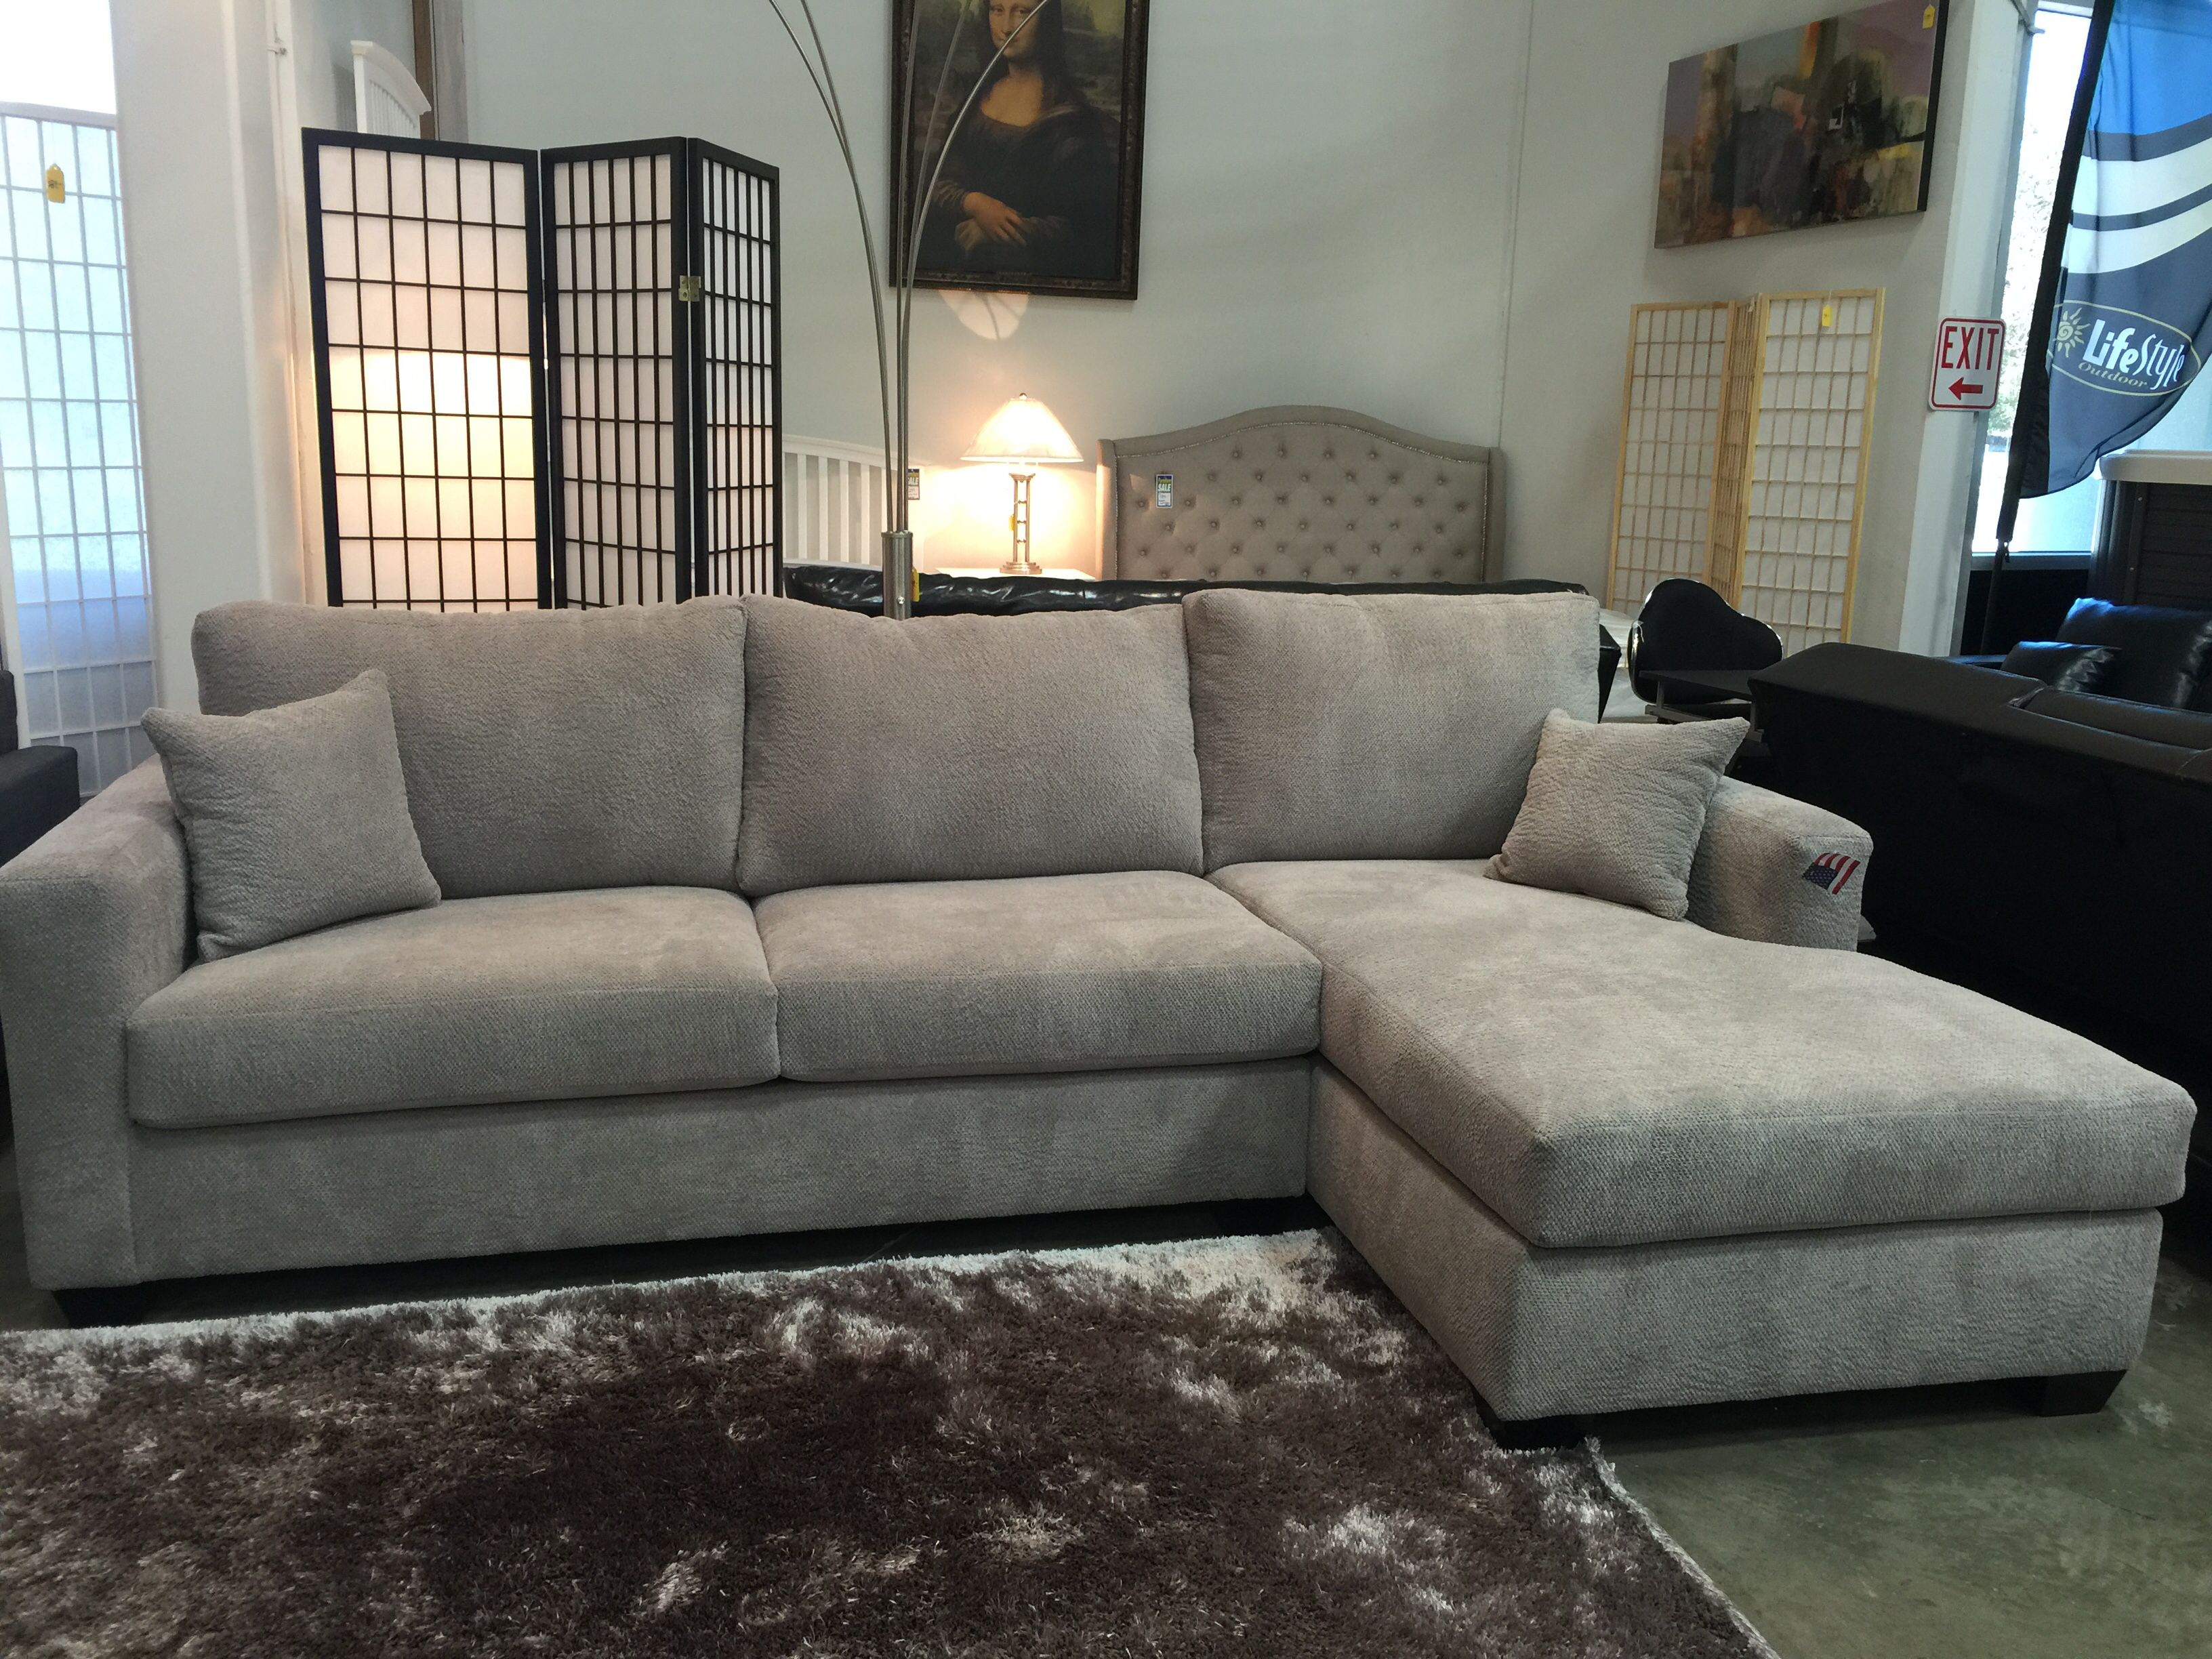 Custom Sectional different colors and sizes made in Los Angeles